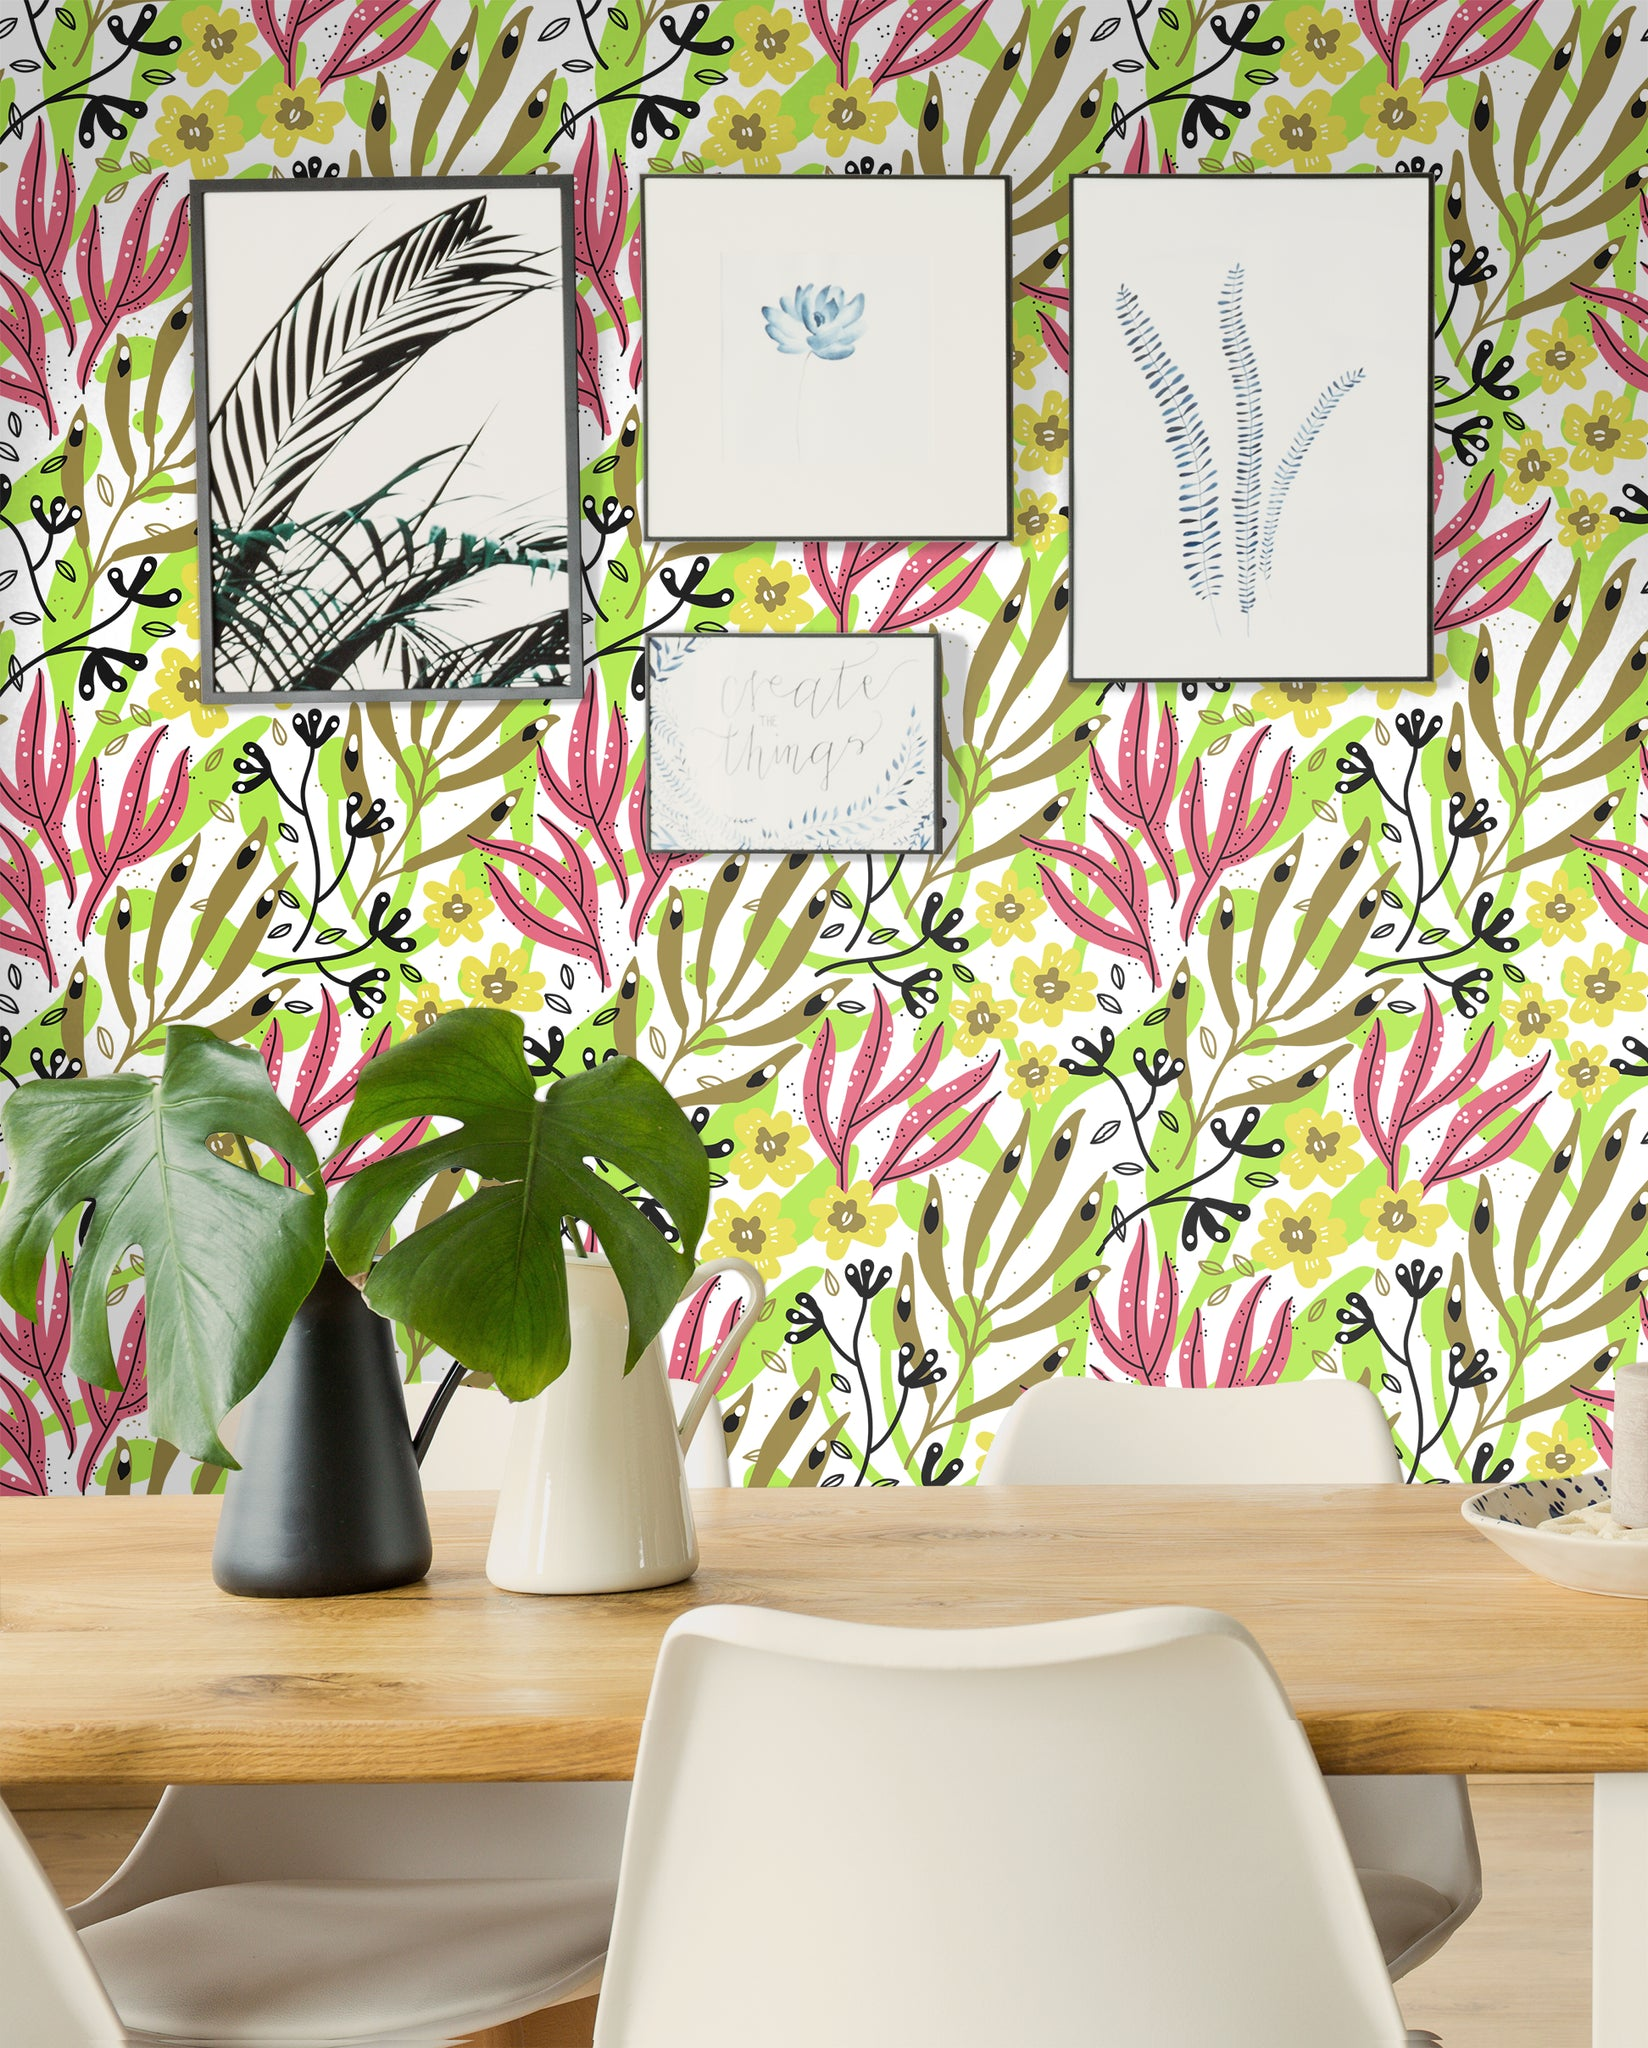 Brightly colored flower and plant removable wallpaper behind a birch dining room table with white chairs and framed pictures